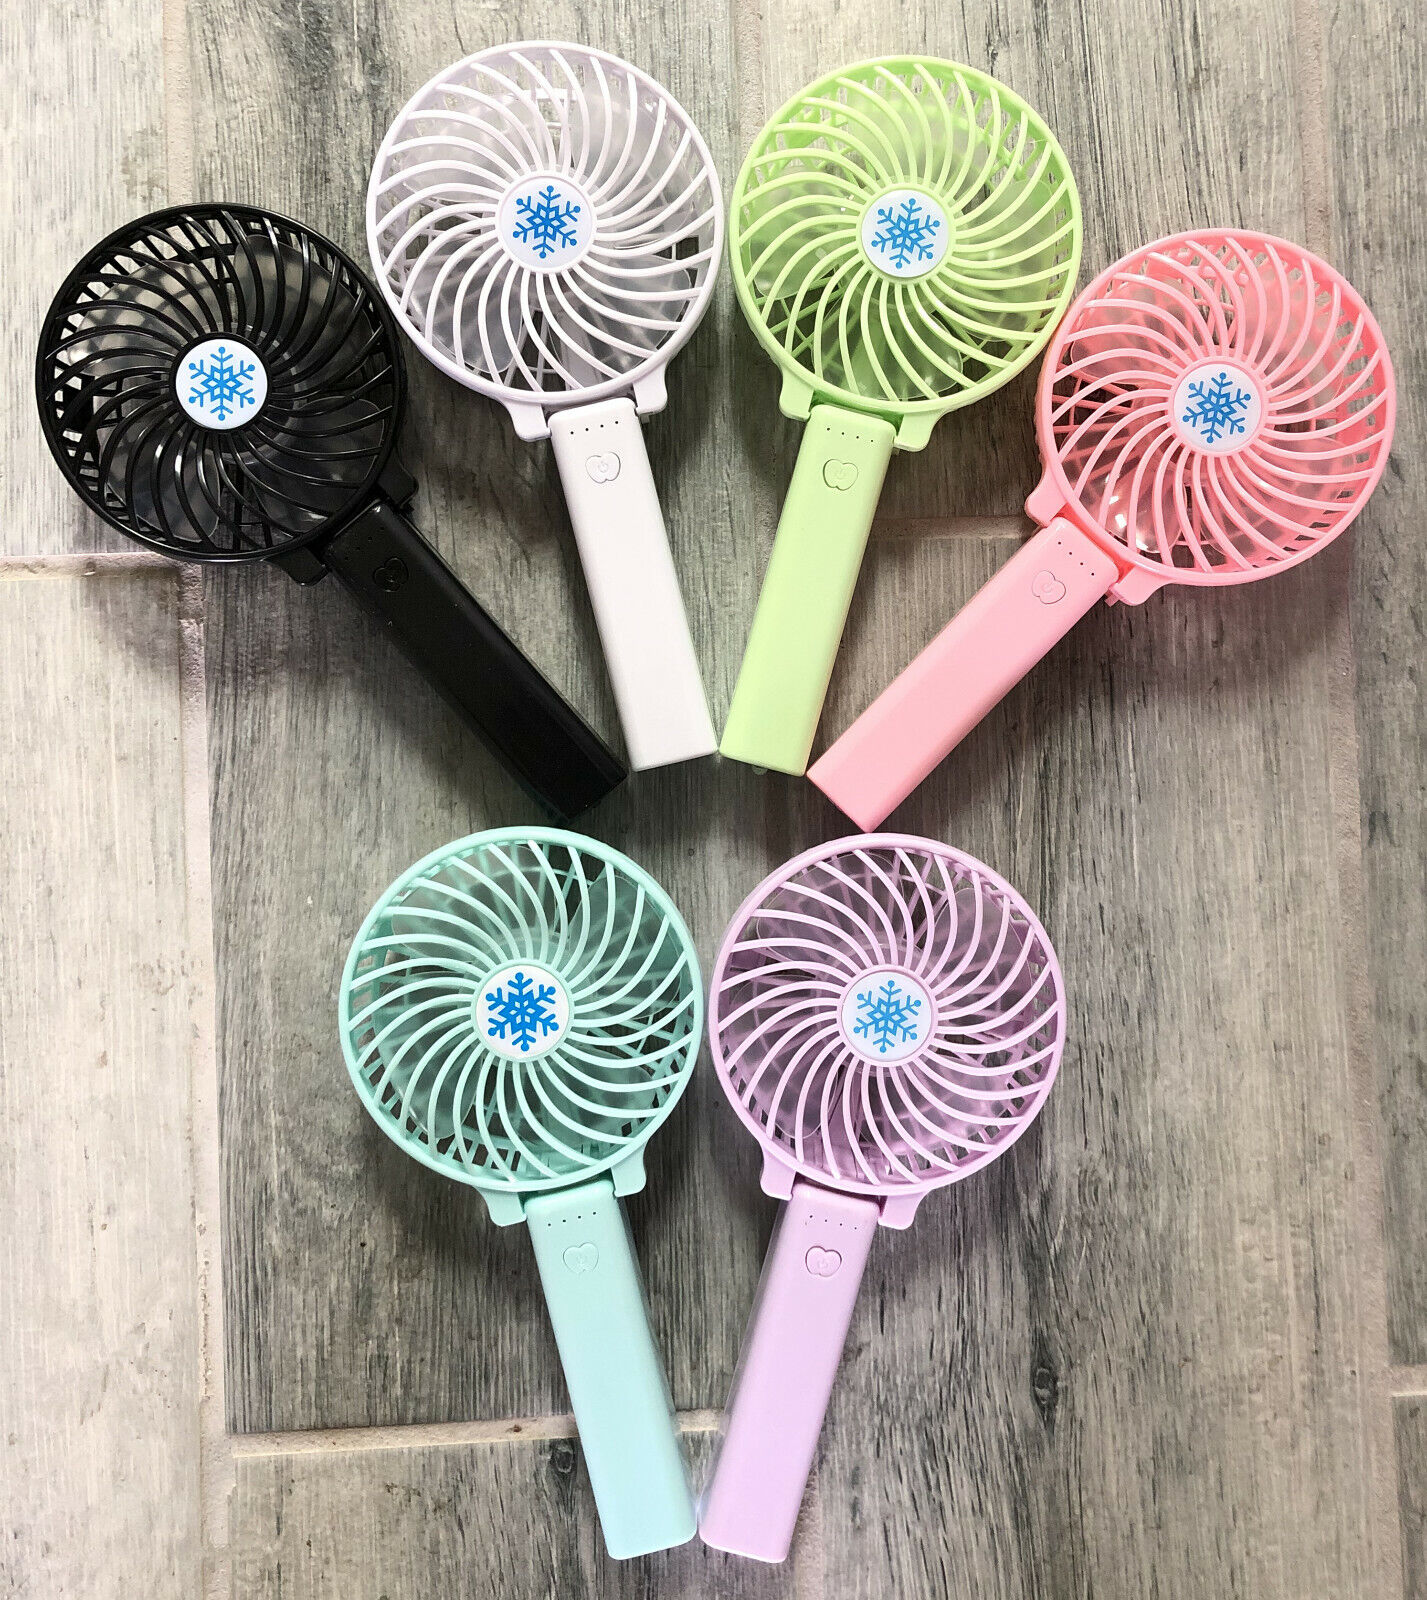 New Portable Rechargeable Fan Pocket Size Air Cooler Mini US